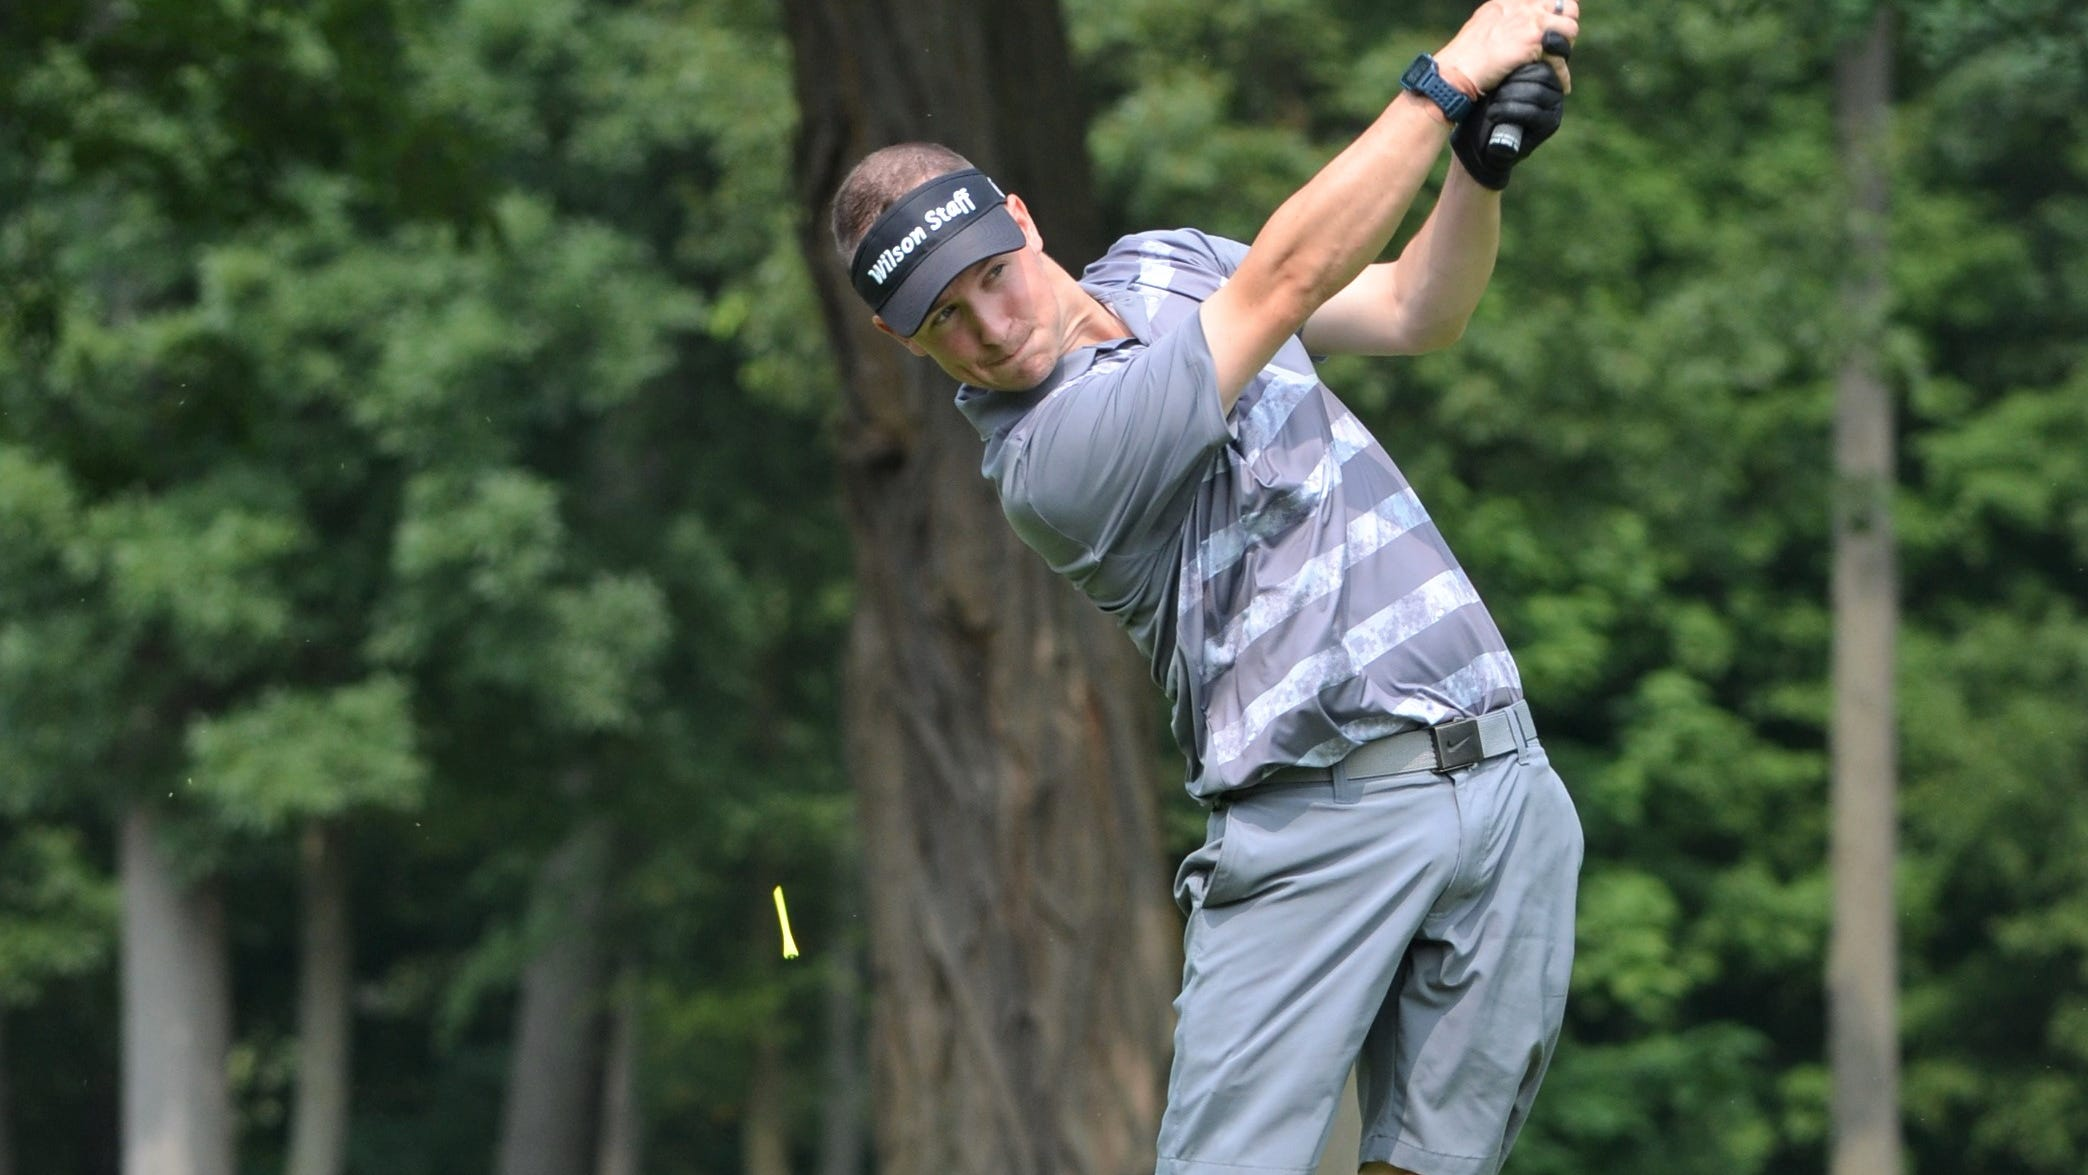 Former Lakeview and Northwood University standout Kory Roberts was the leader after the first day of the Cahoun County Amateur Golf Championship on Saturday.